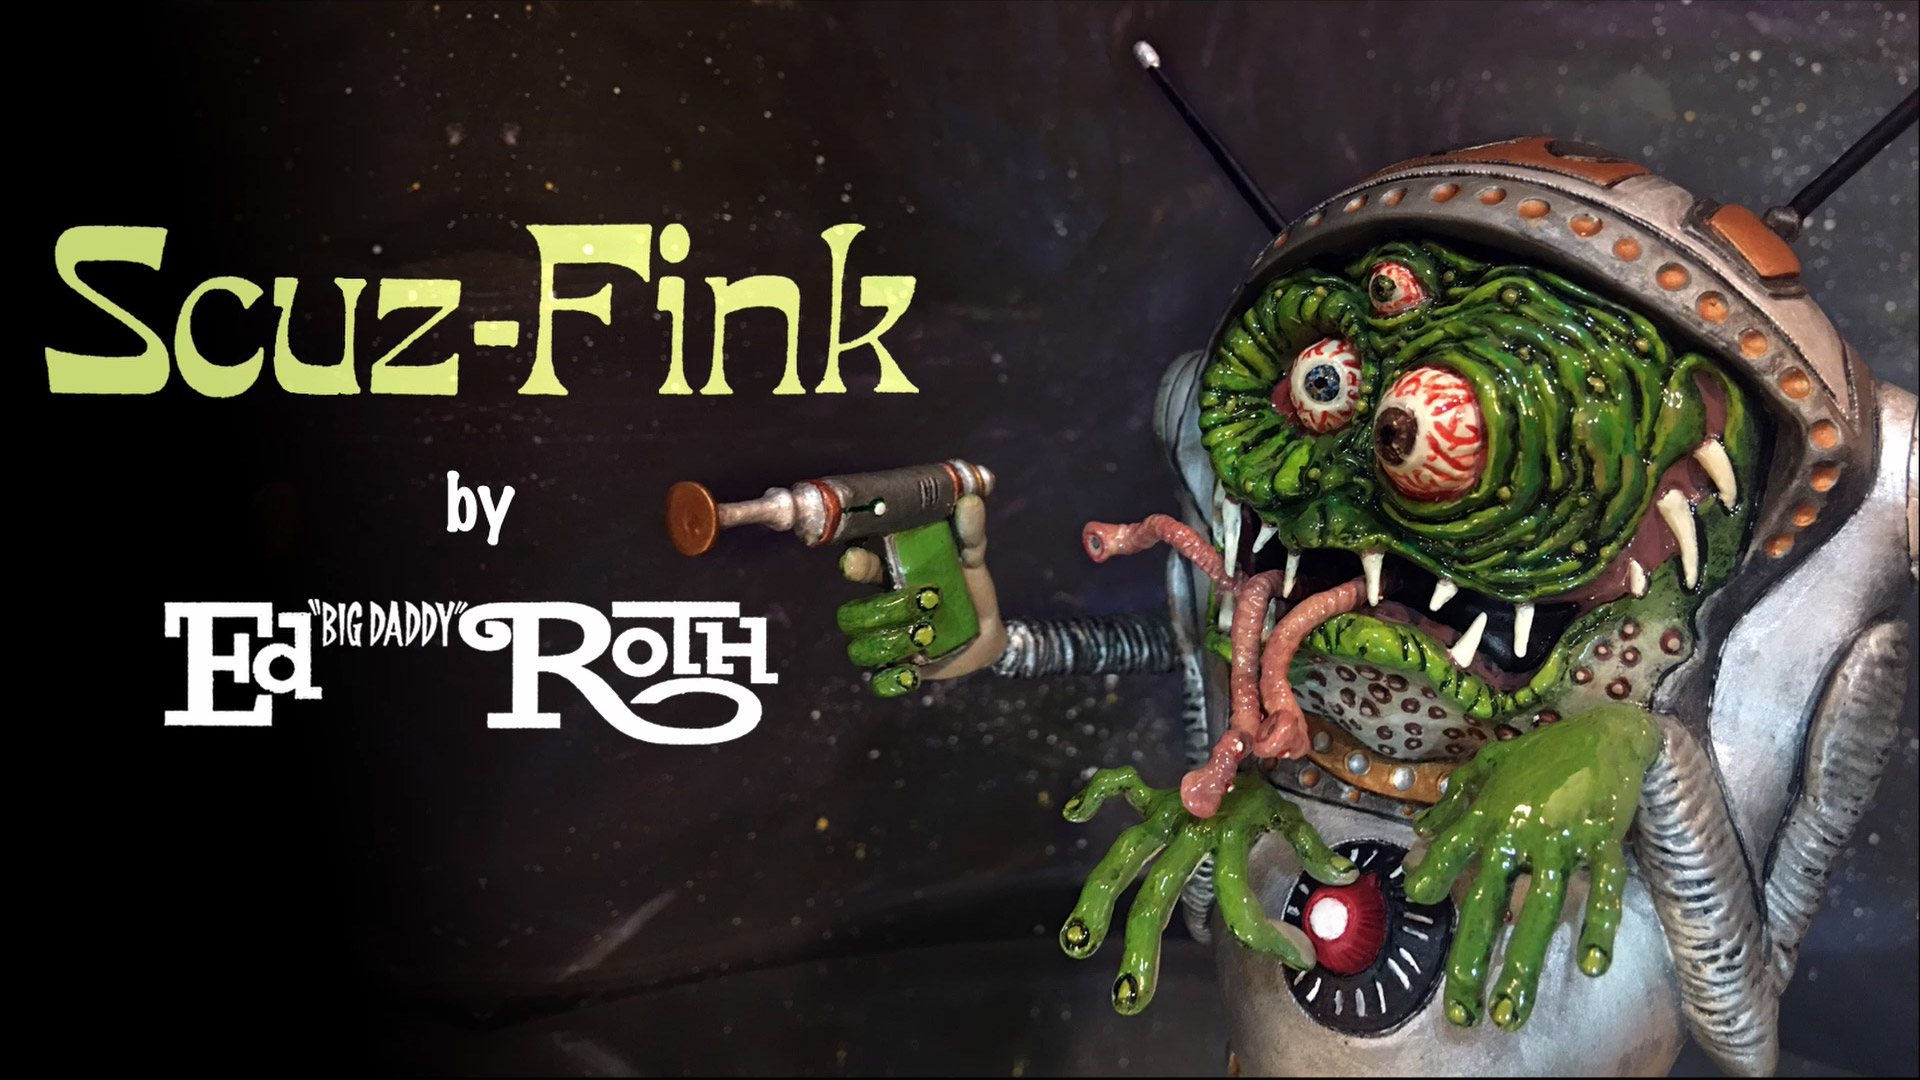 Scuz-Fink by Ed Big Daddy Roth